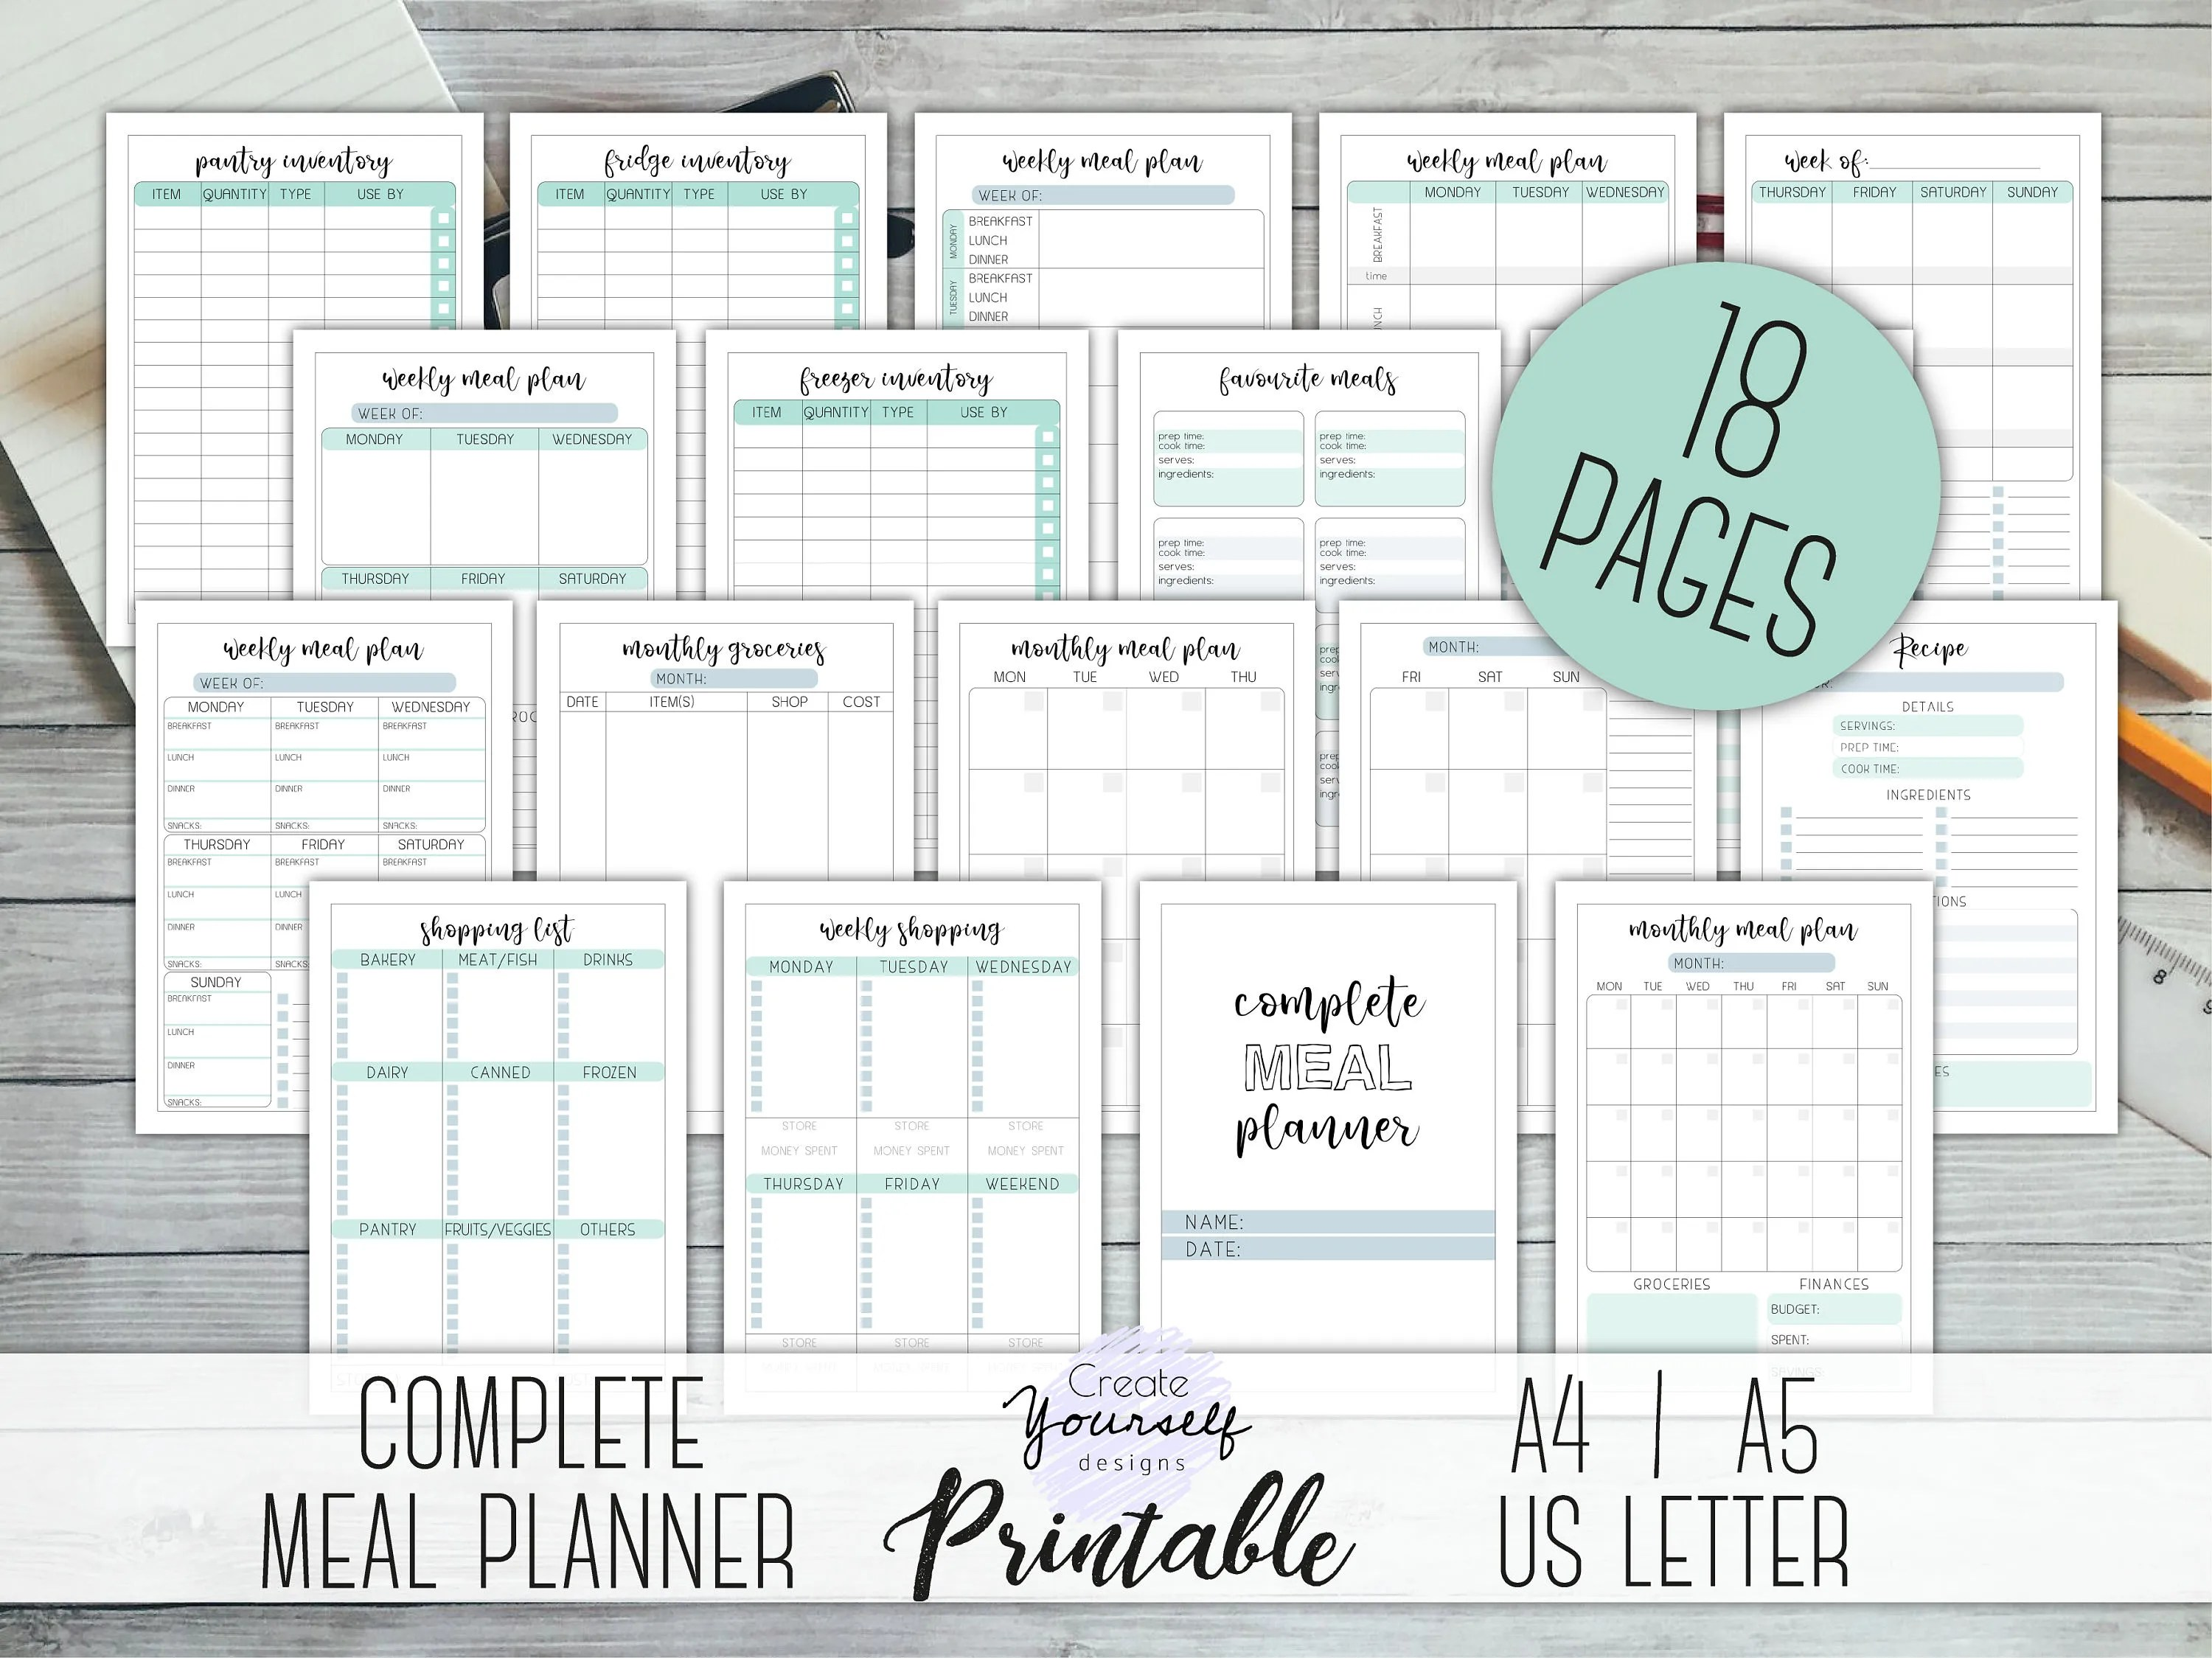 Complete meal planner printable meal planner kit grocery Etsy